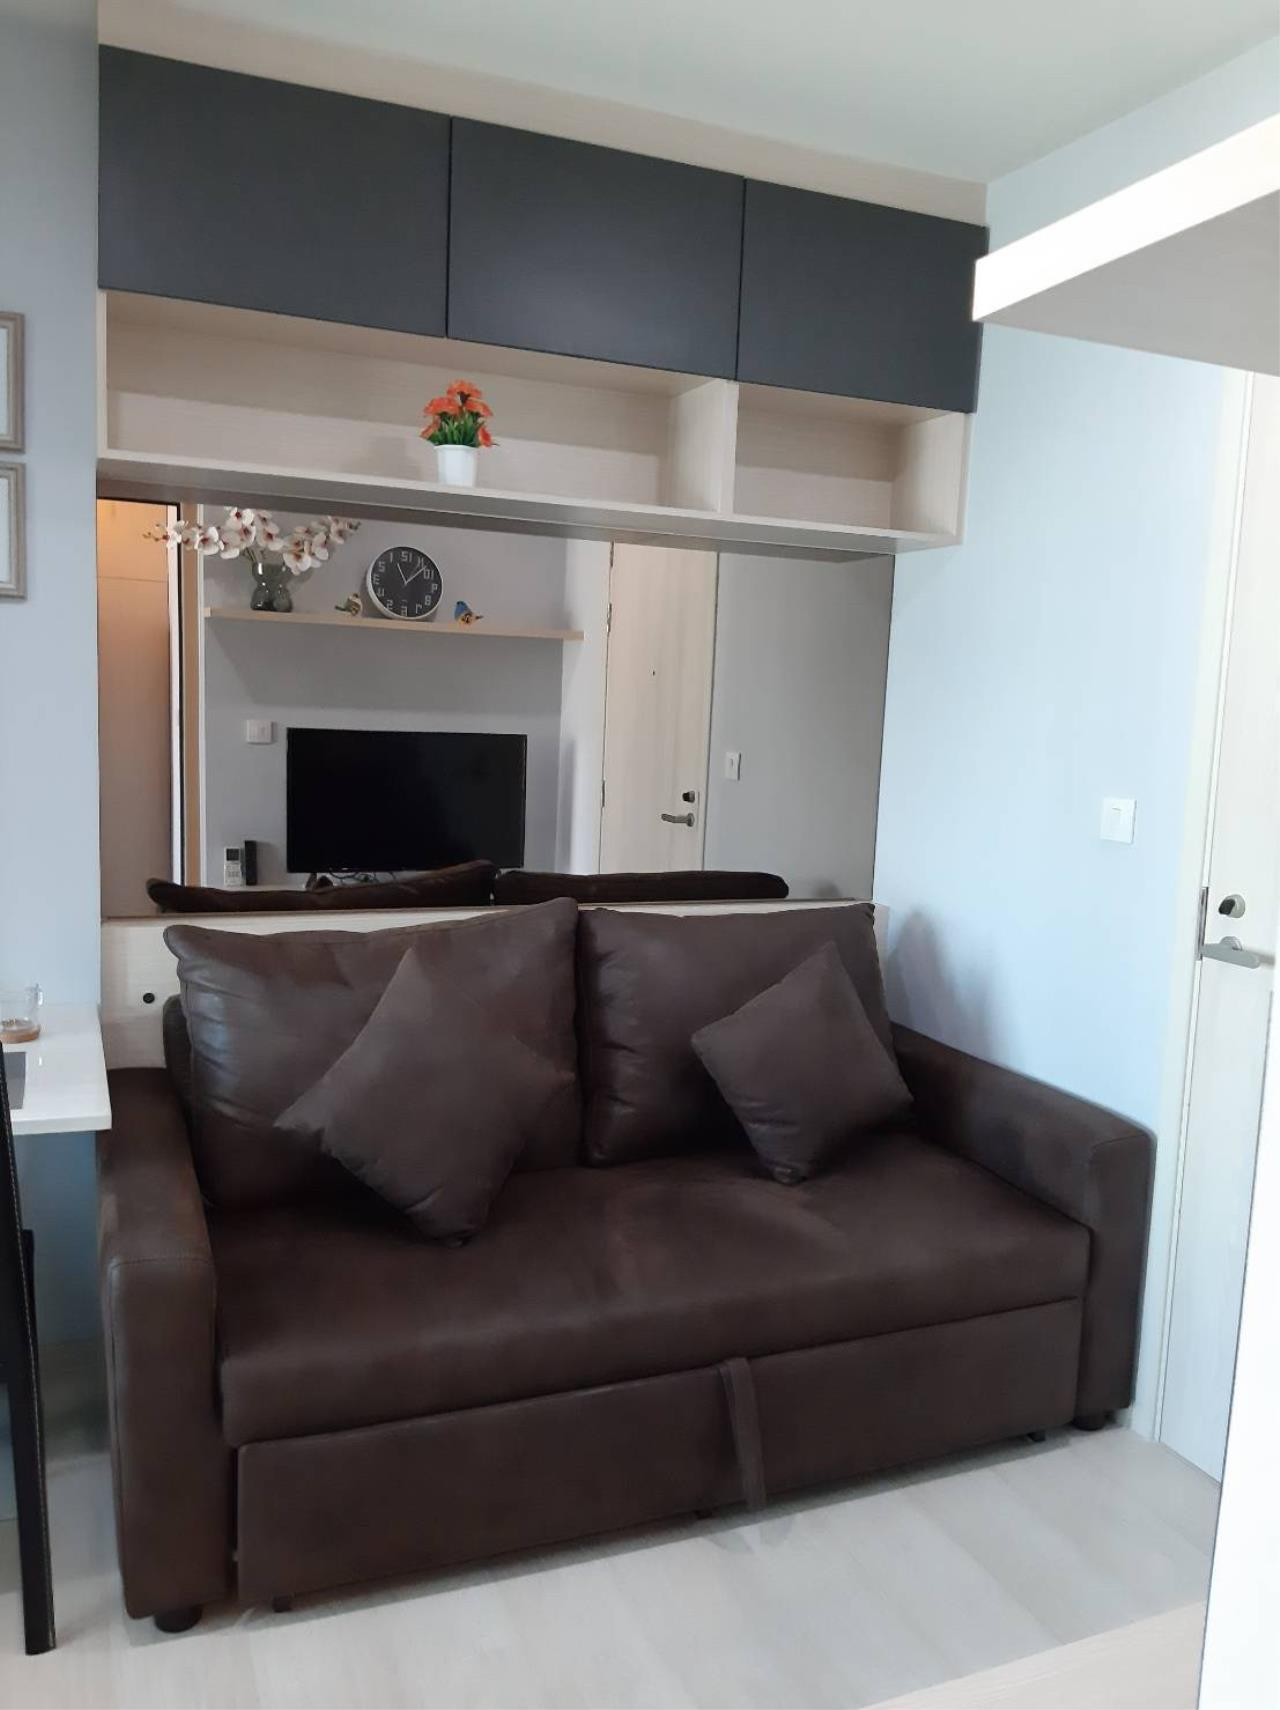 Su Agent Co.,Ltd Agency's BS050 Life Asoke Condo for rent 19,000/month 3